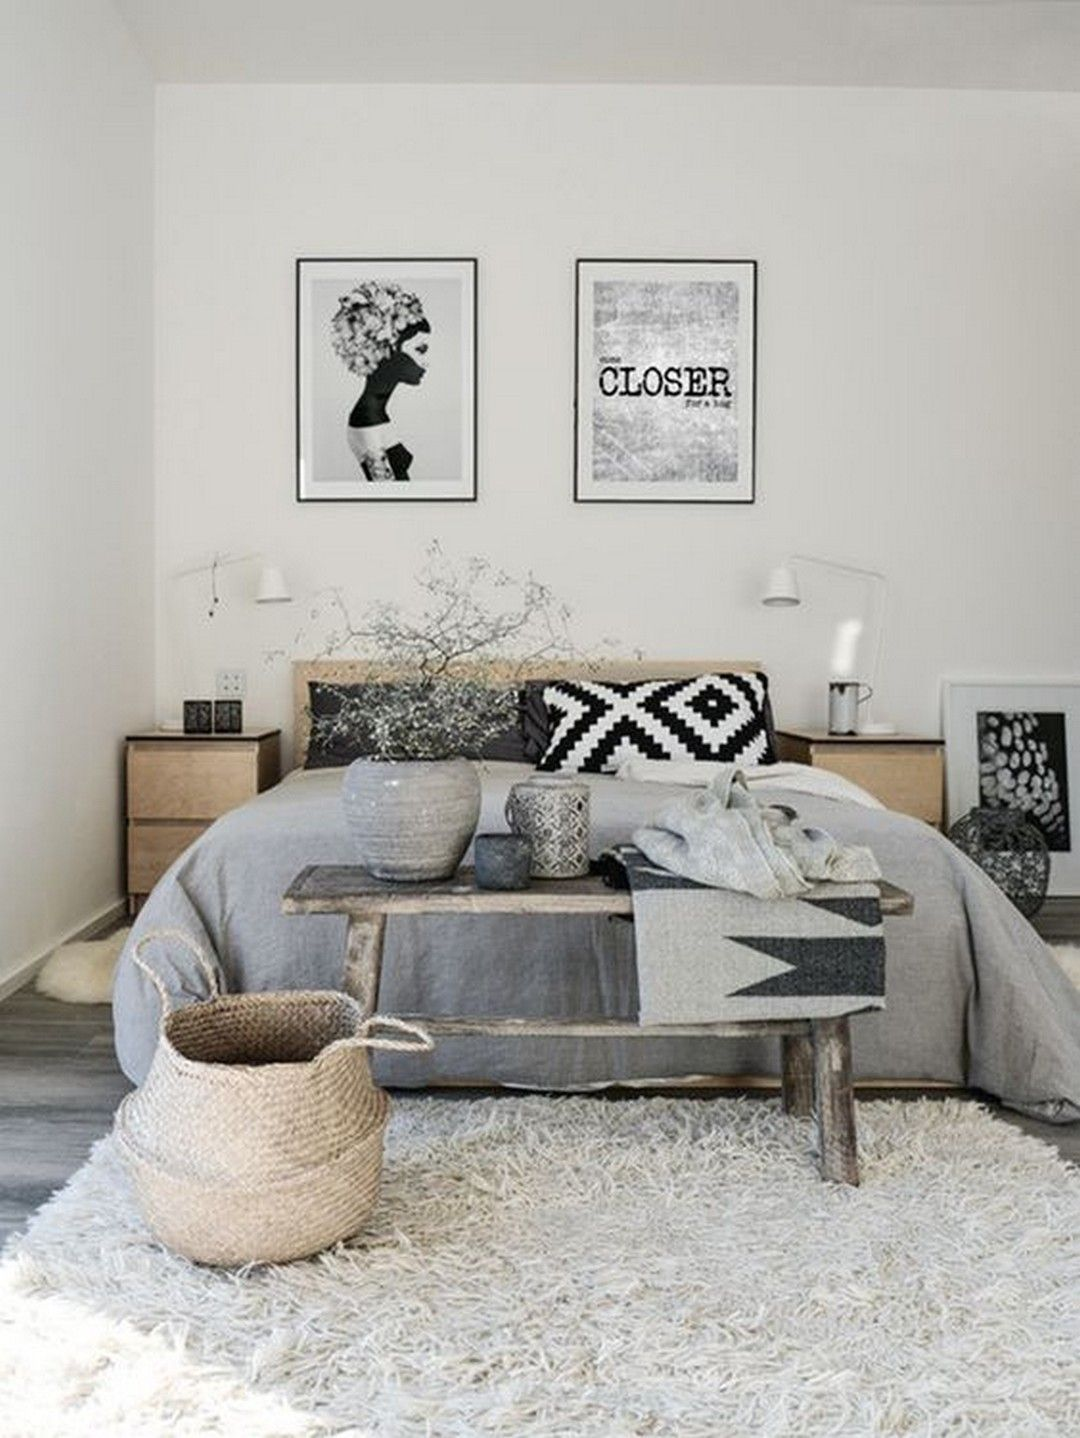 Neues schlafzimmer interieur does the thought of interior design leave you seeing spots help is